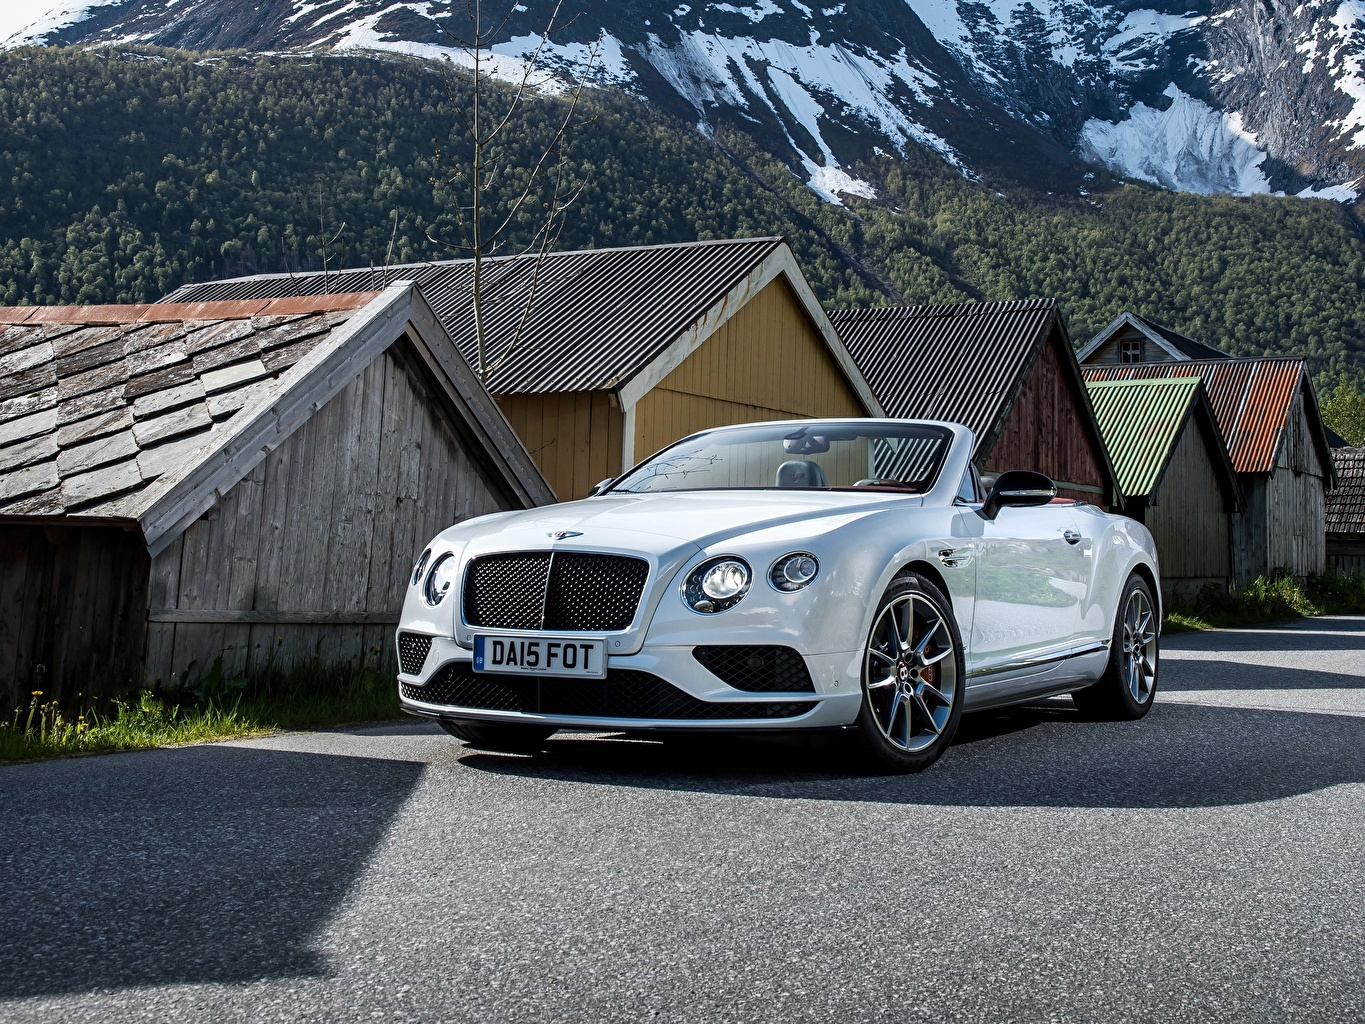 Images Bentley 2015 Continental GT V8 S Convertible Cabriolet White automobile Cars auto